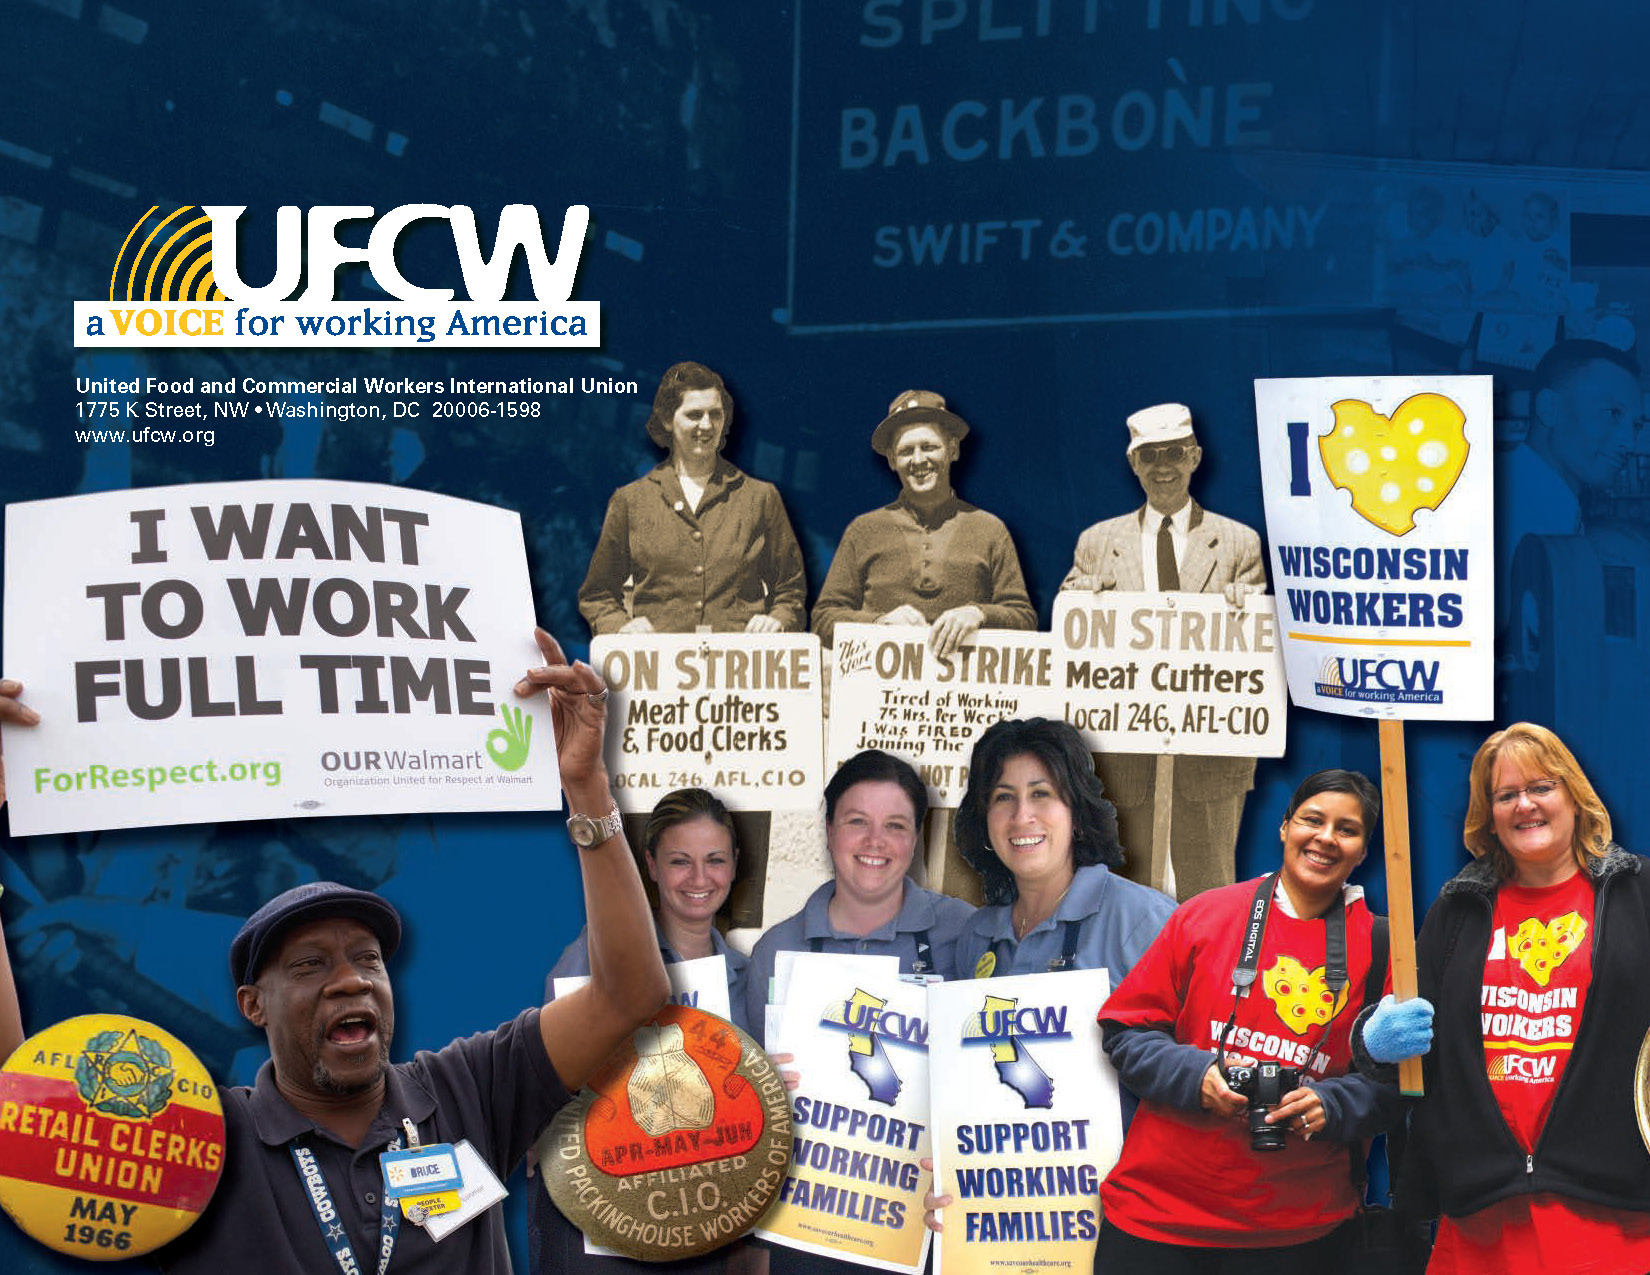 UFCW Celebrates 38 Years of Standing Up for Workers